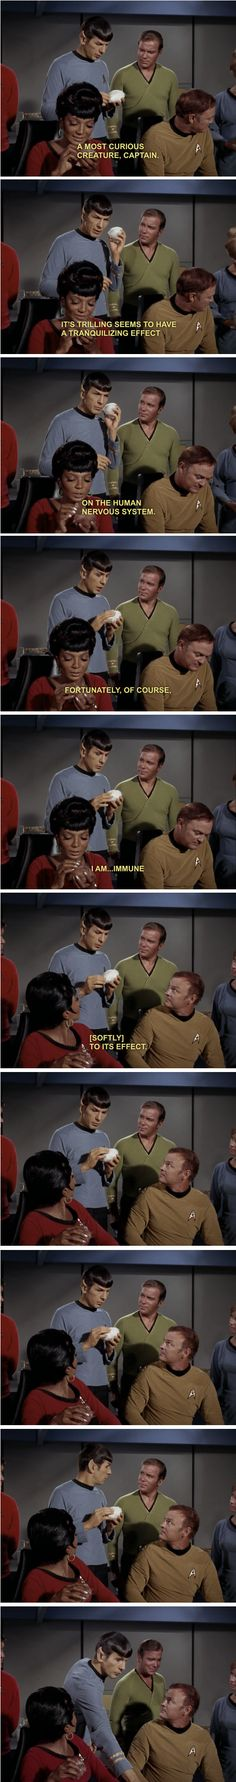 I love this scene from the Trouble with Tribbles!